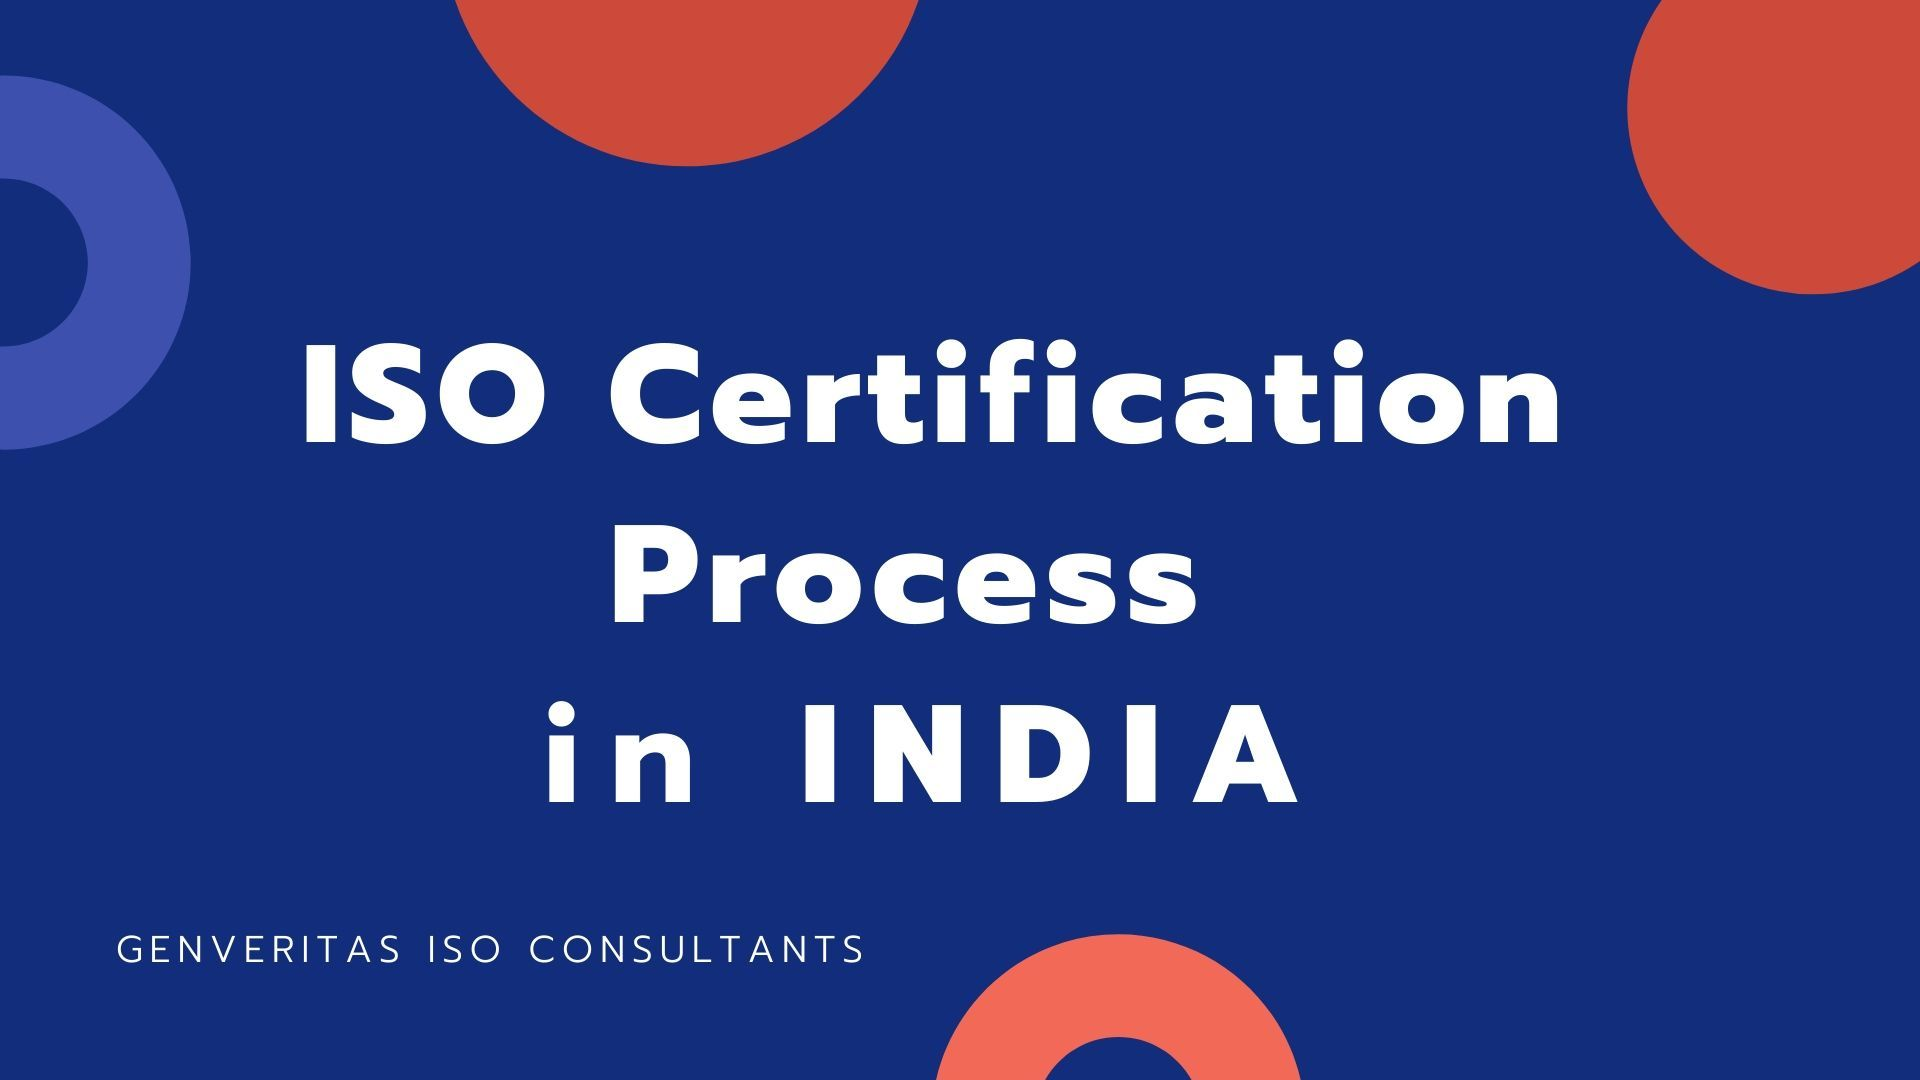 Process of ISO Certification in India in 2020